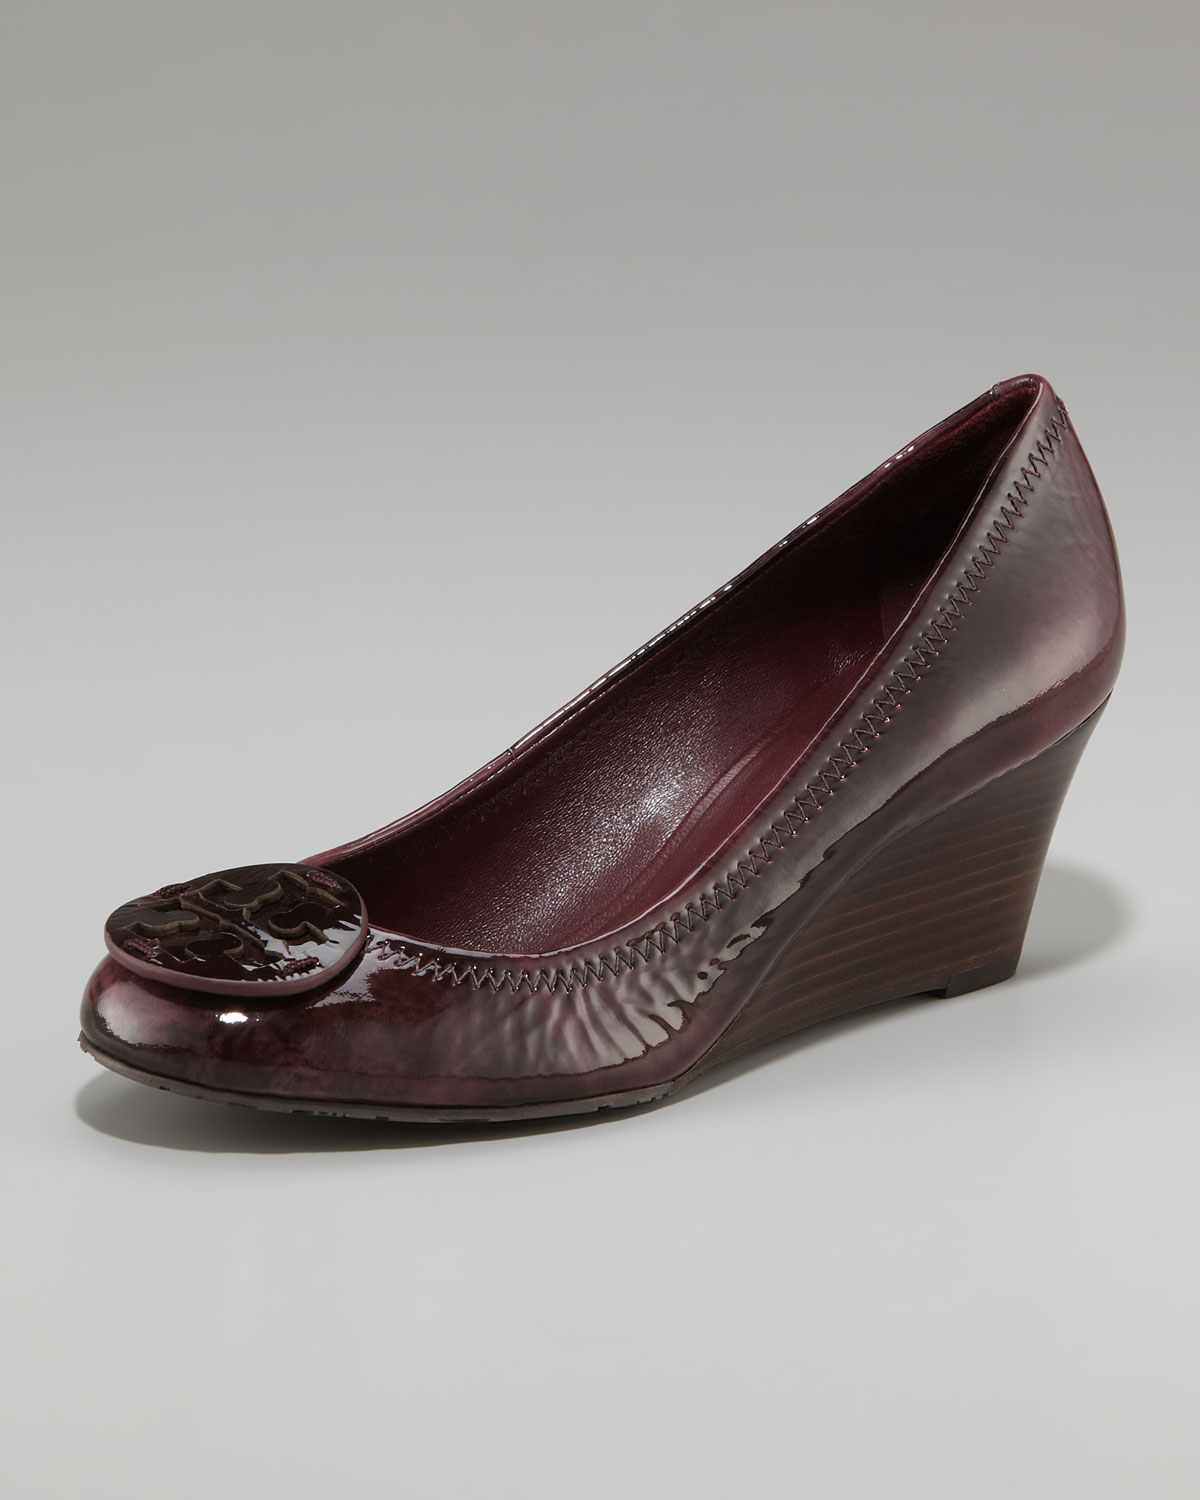 56189324d97 Lyst - Tory Burch Sally Logo Patent Wedge Pump in Brown